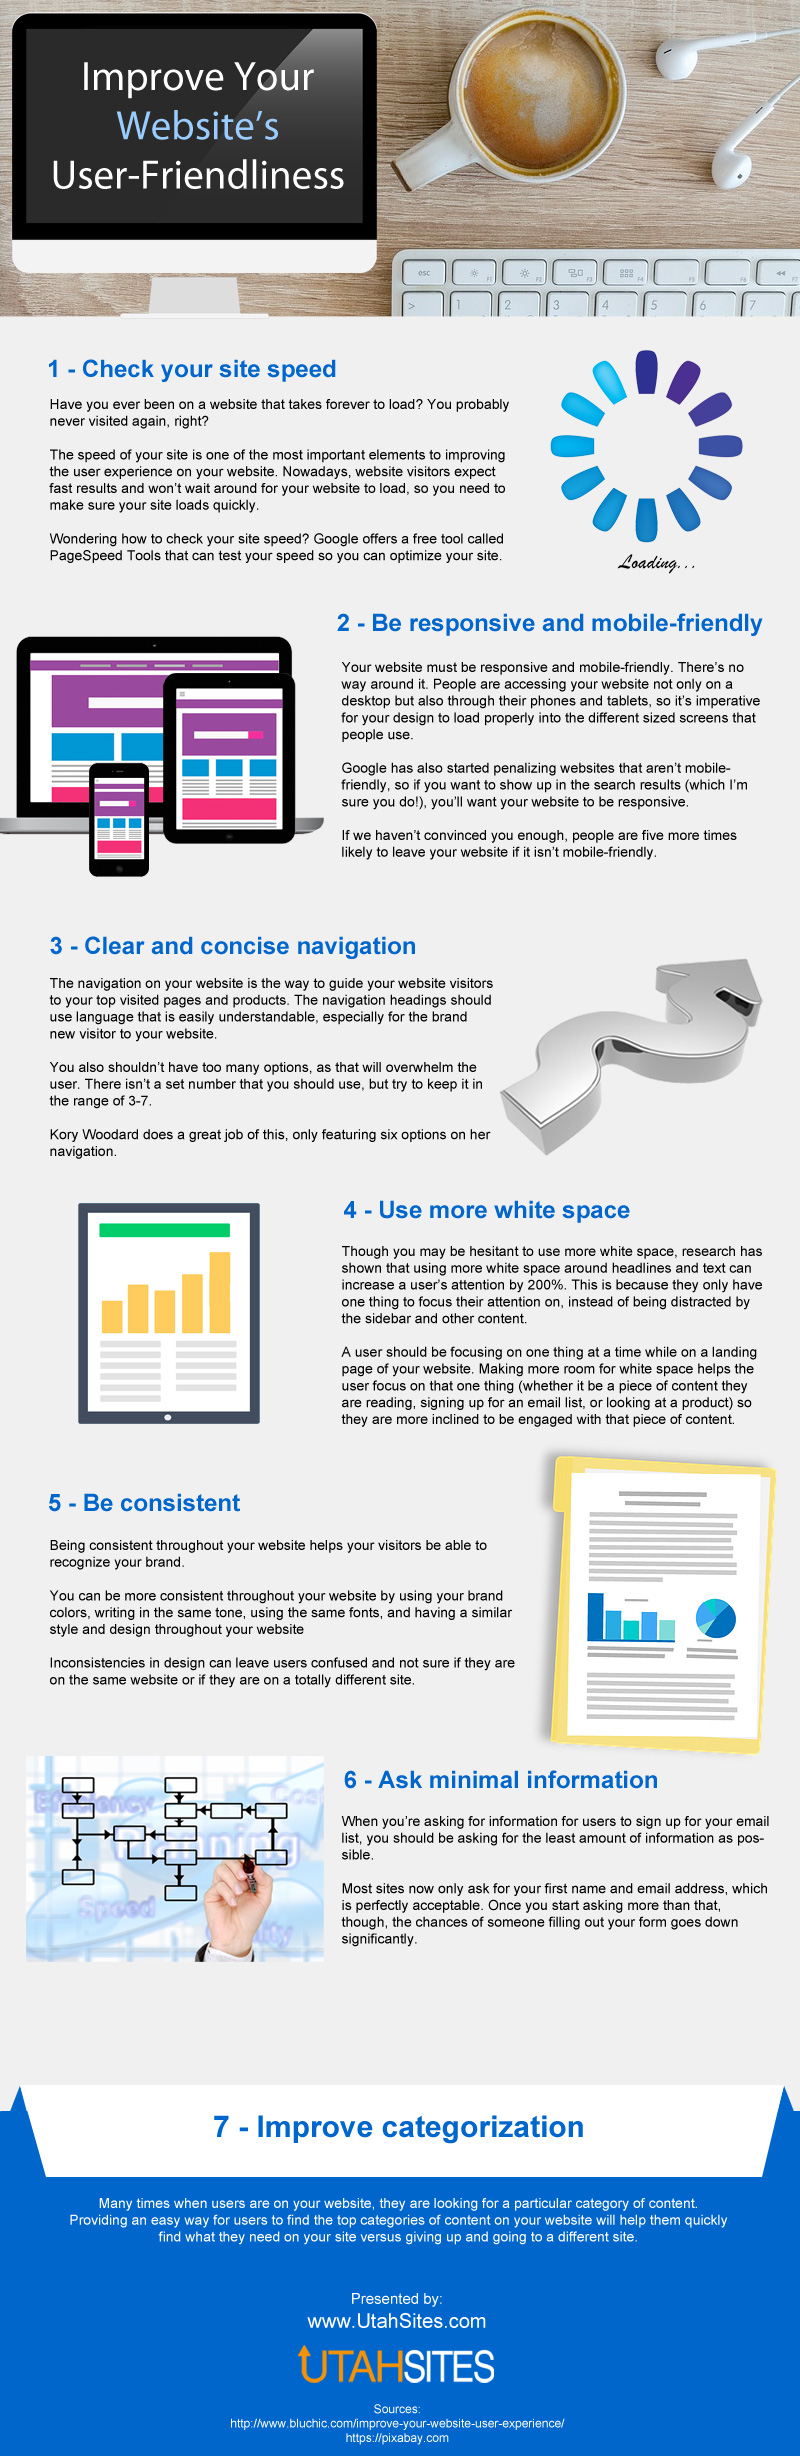 Improve Your Website's User-Friendliness [Infographic]